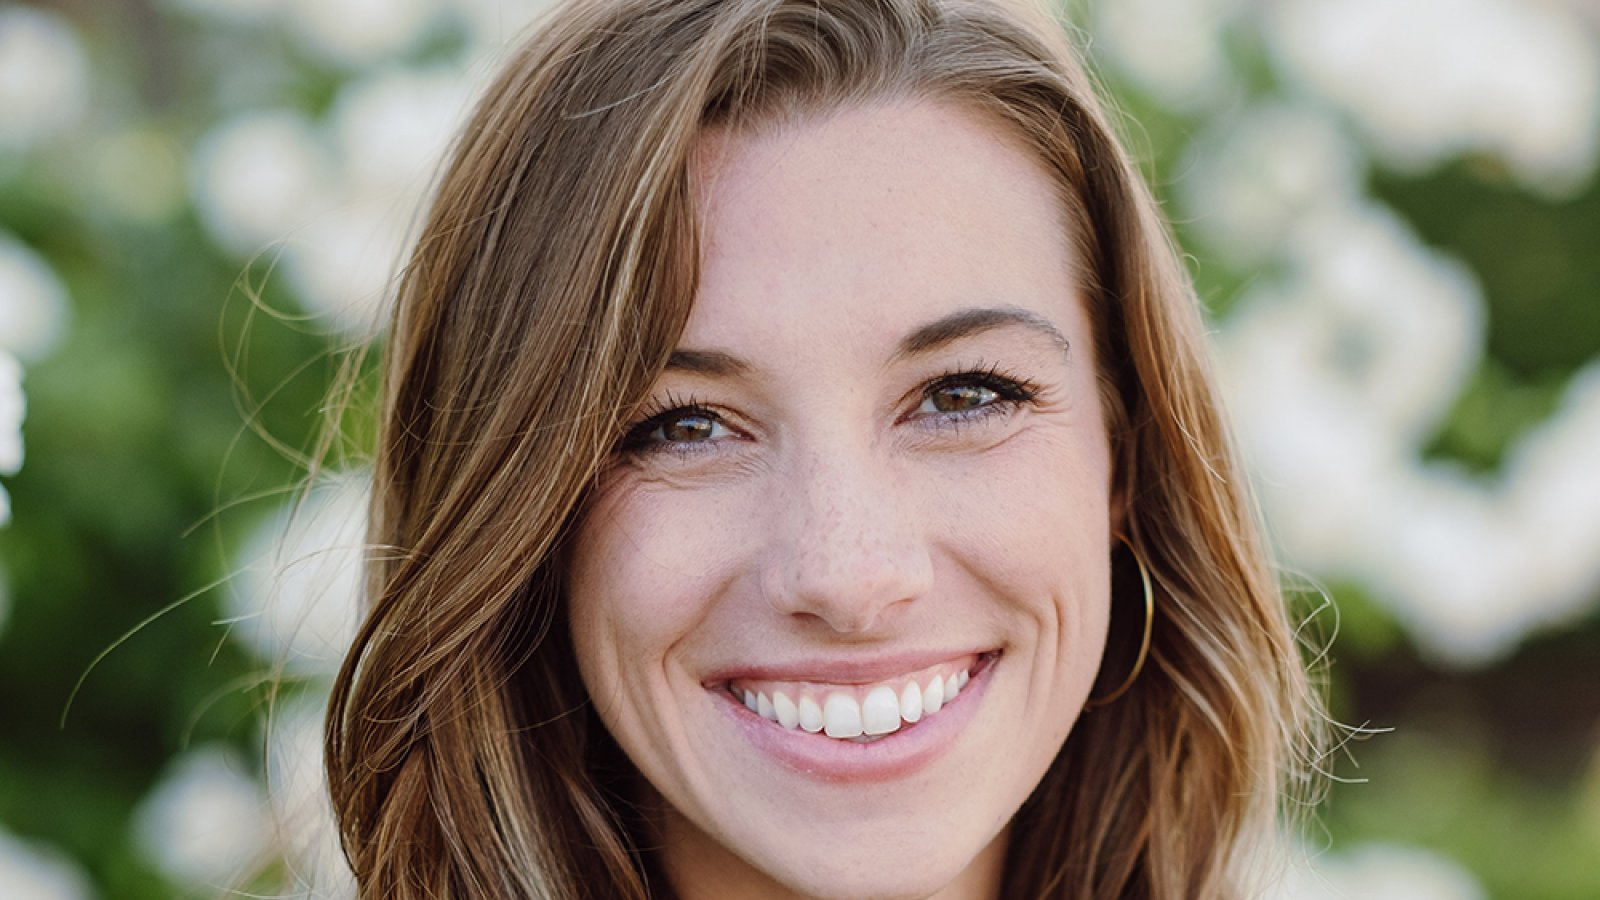 Taylor Kerl, a mechanical and materials engineering alumnus, was chosen to receive the 2020 Promise Award by Space and Satellite Professionals International (SSPI).